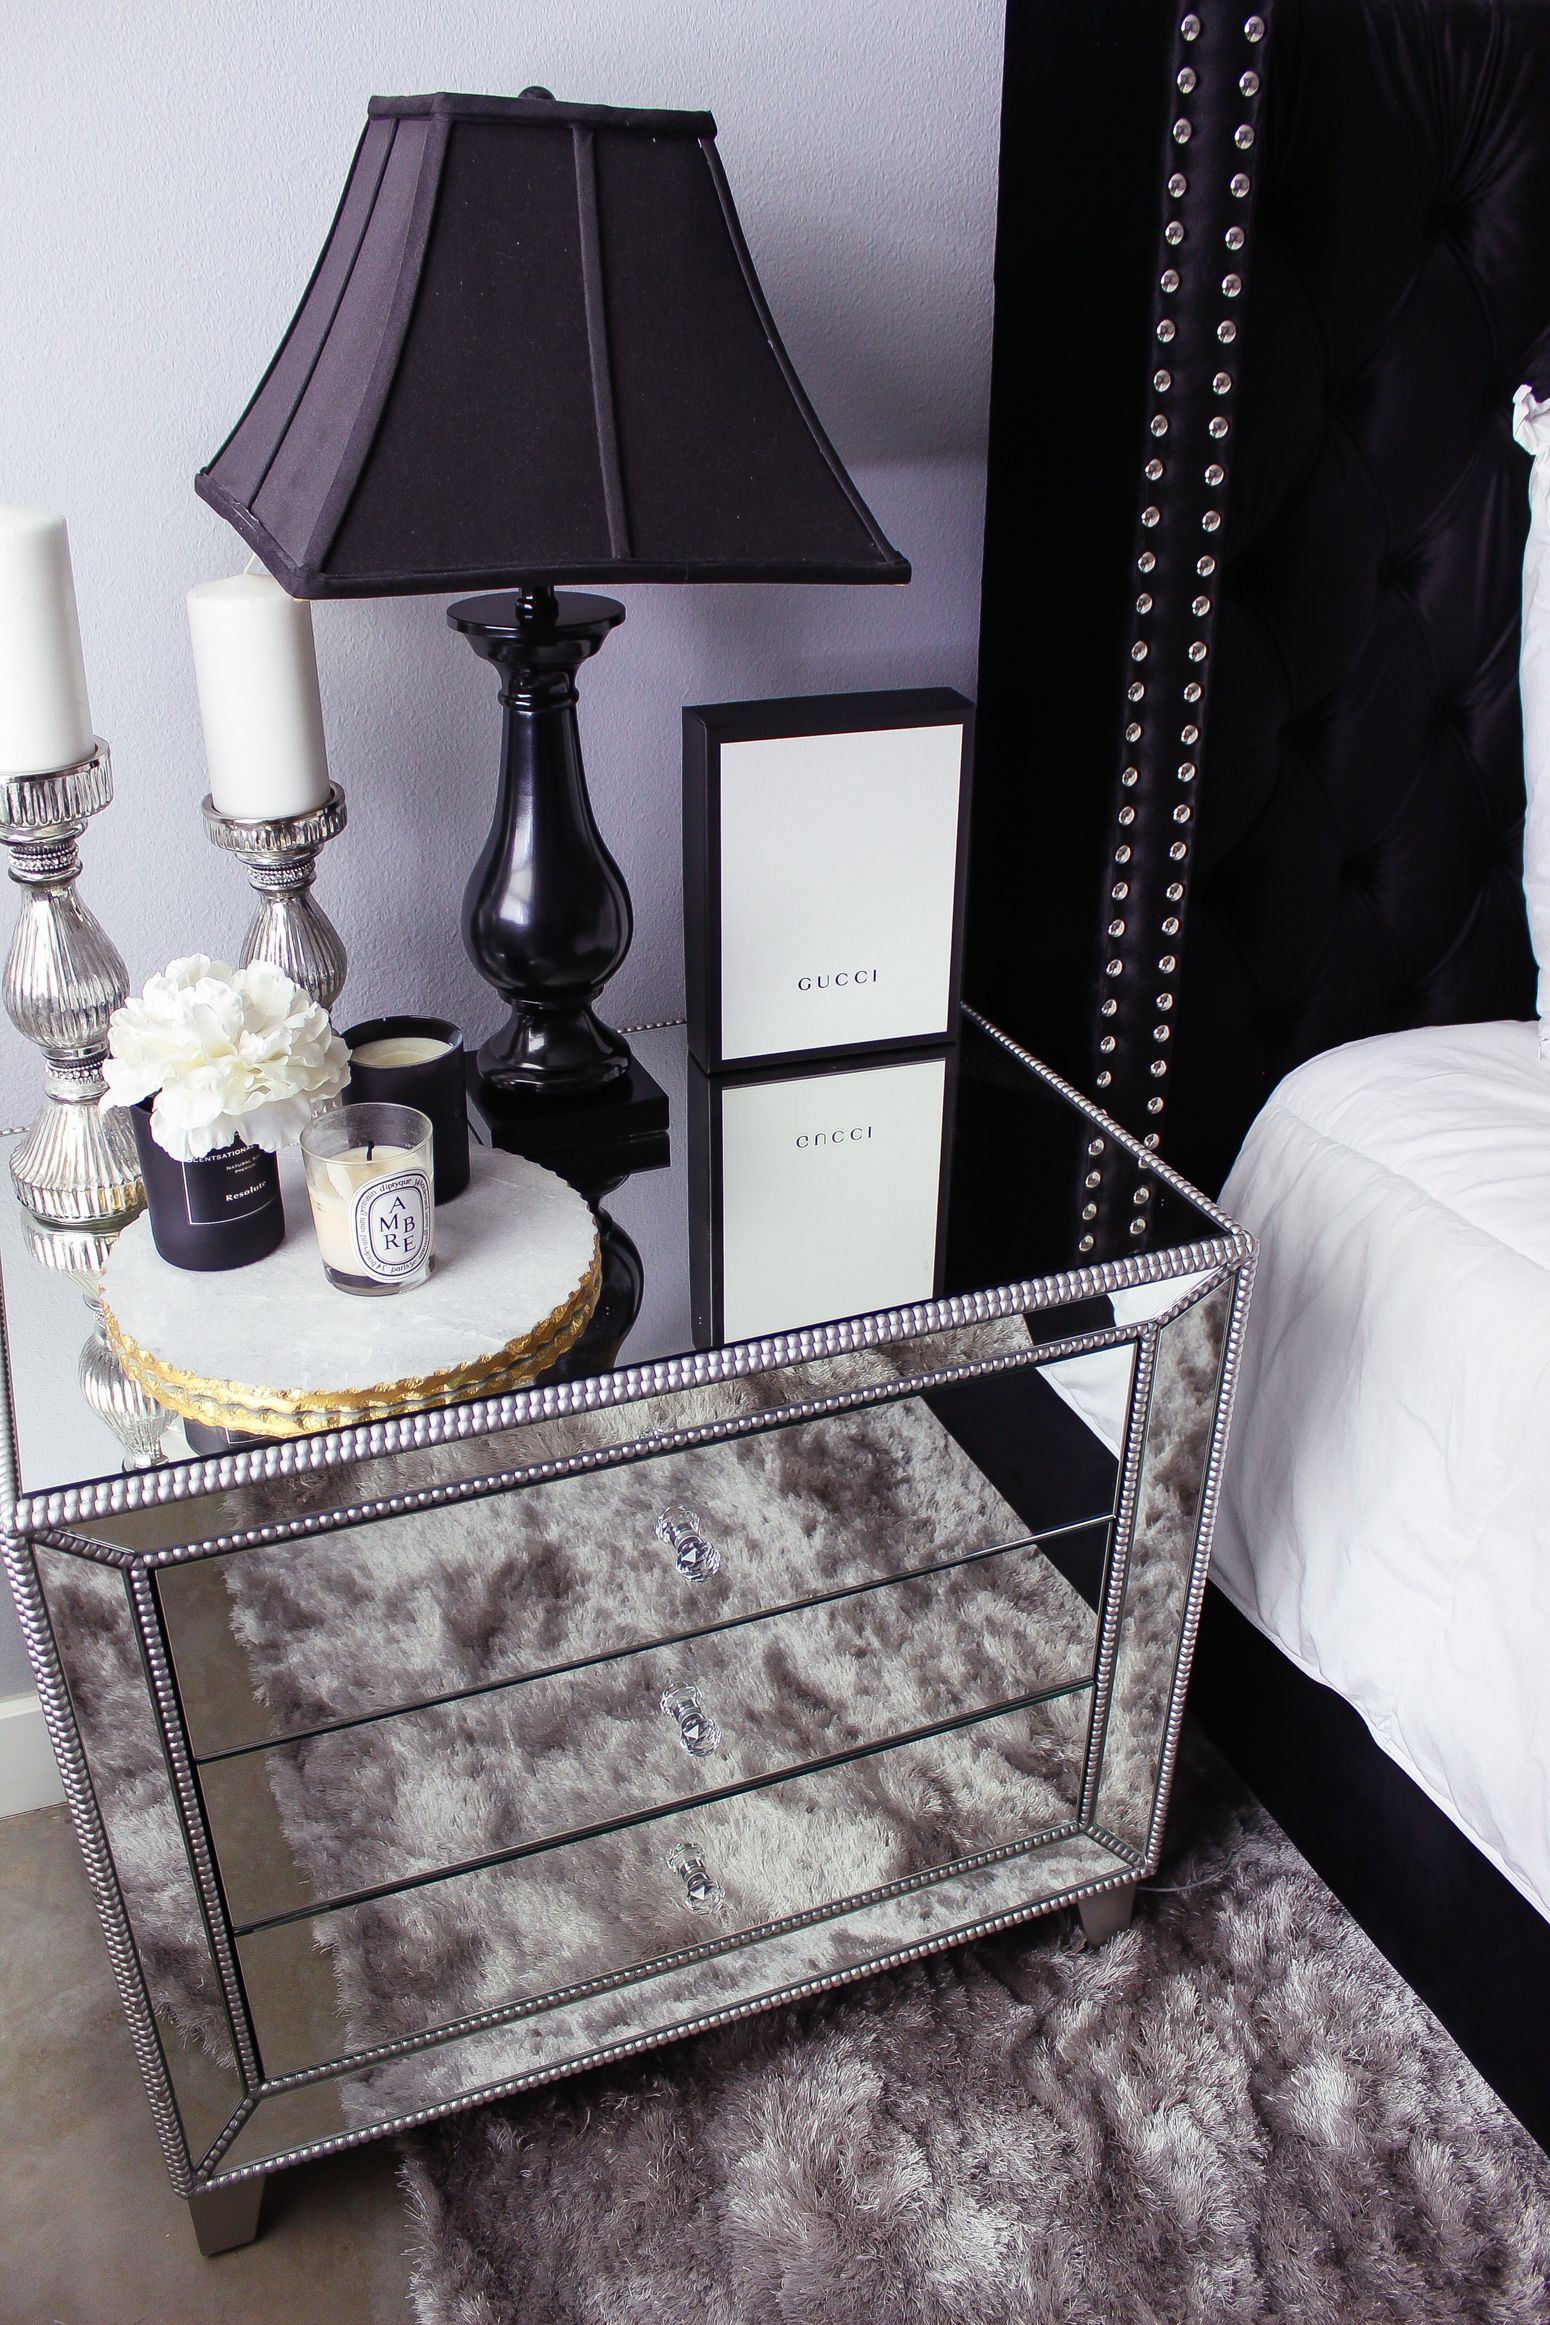 Black White Bedroom Decor Reveal White Bedroom Decor Glam Bedroom Decor Master Bedrooms Decor